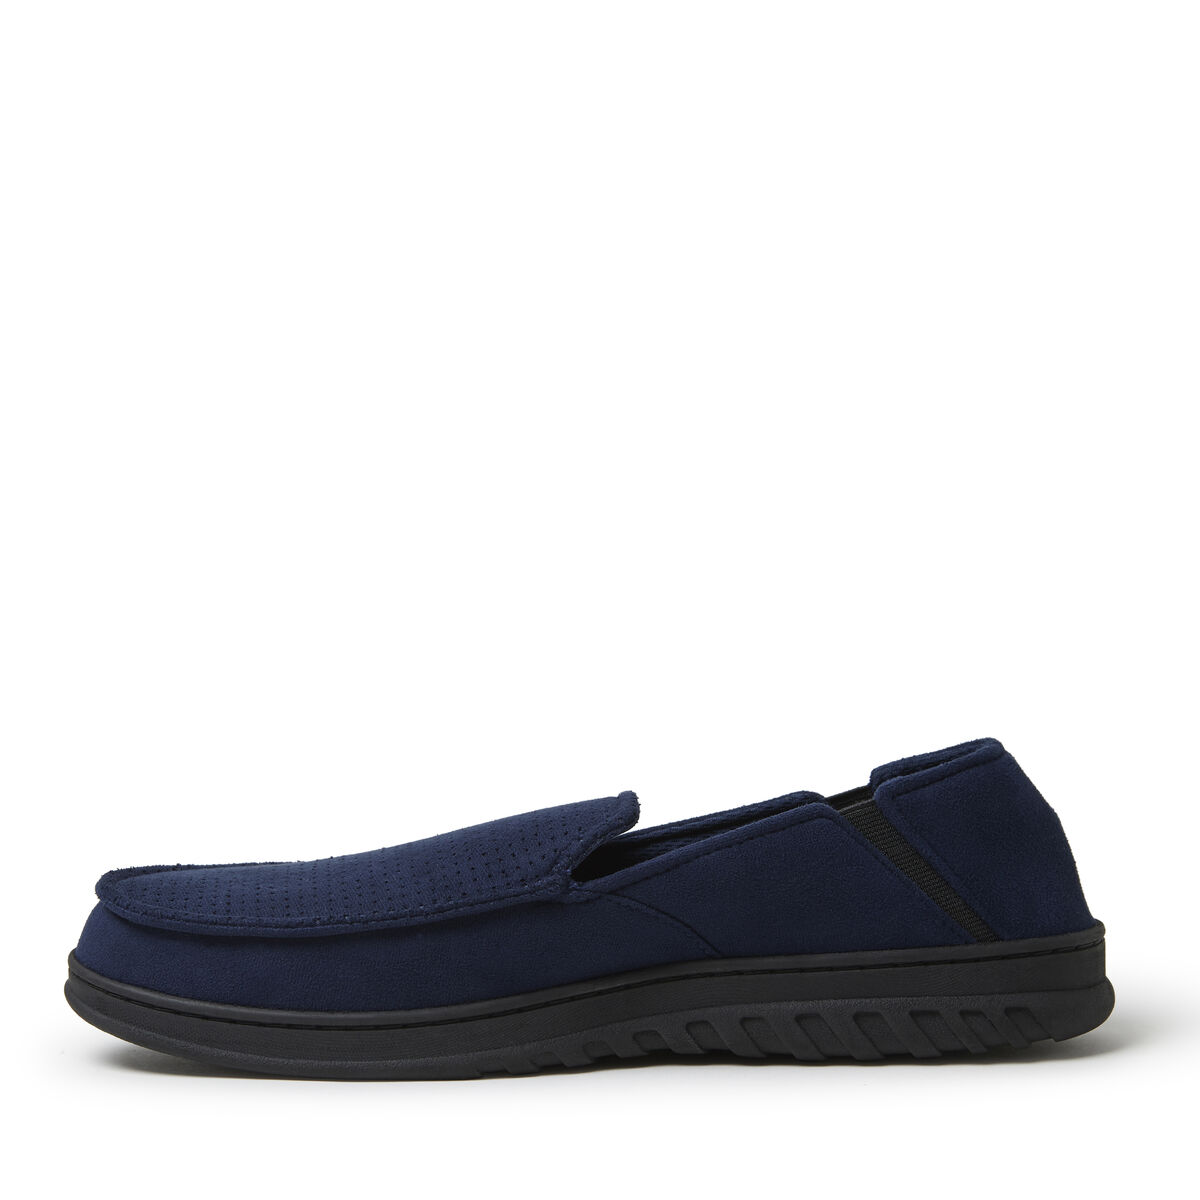 Men's Perforated Moccasin with Gore